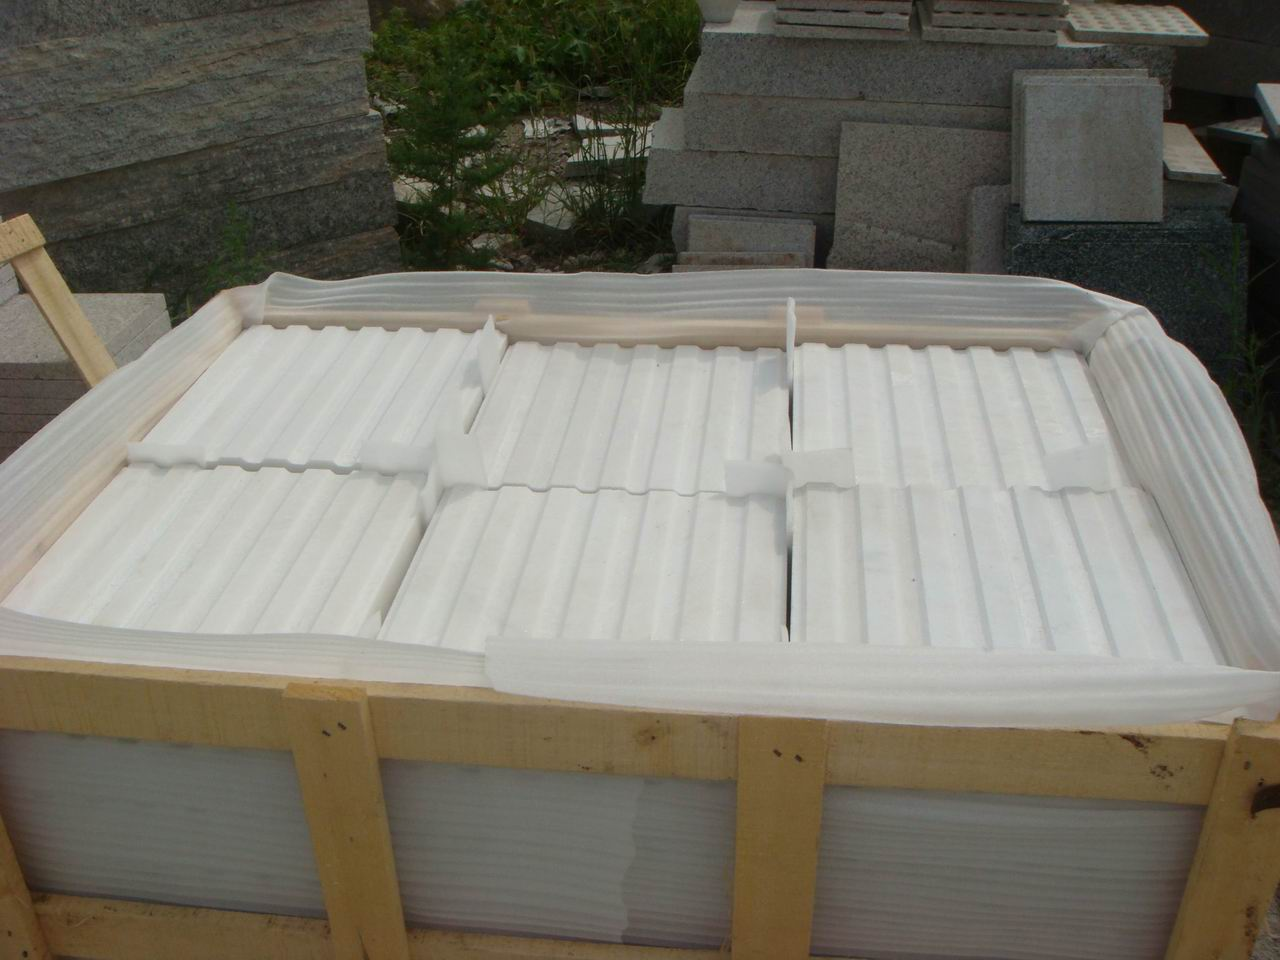 CHINESE WHITE MARBLE BLIND TILES WITH LINES